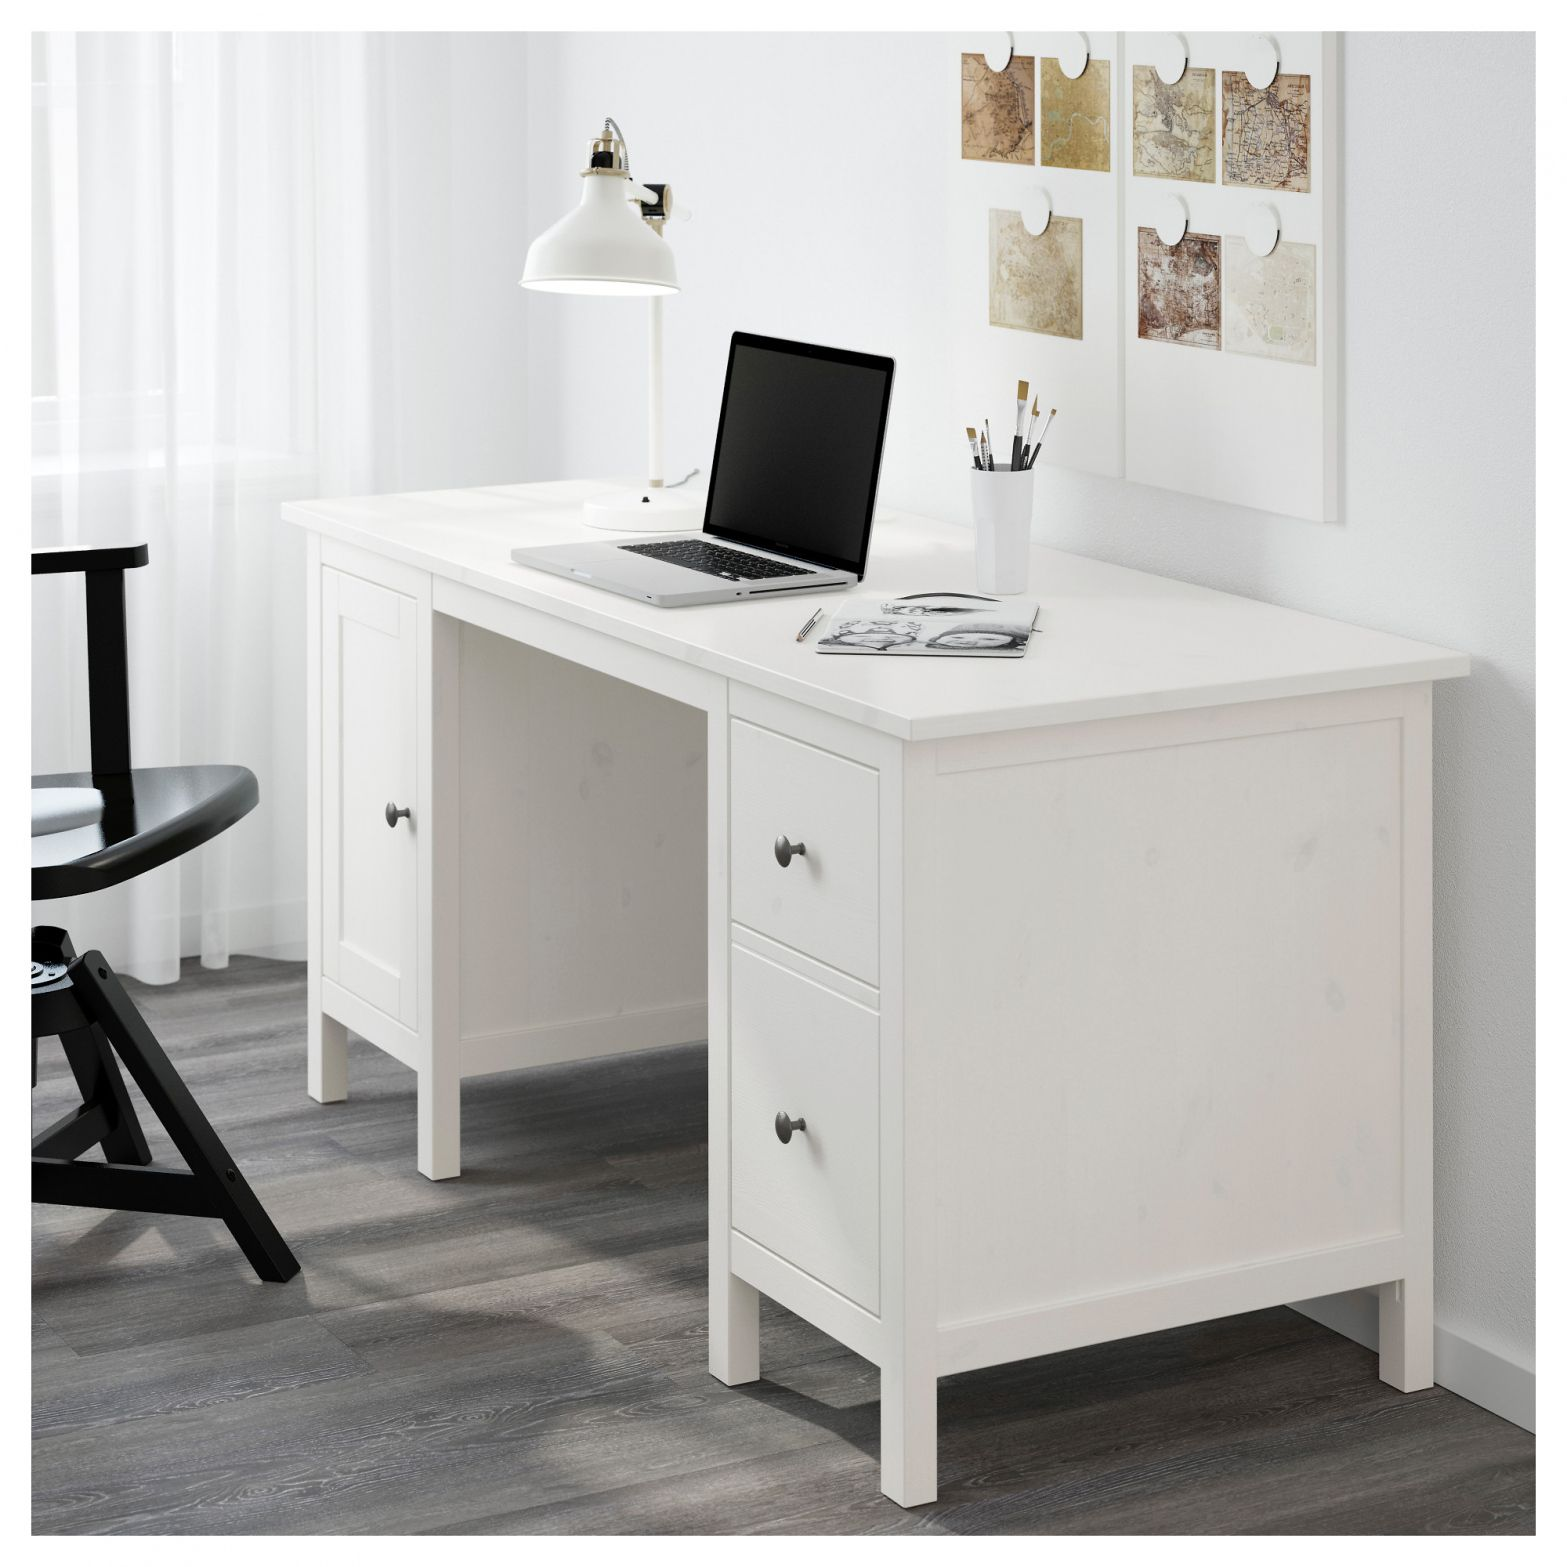 2019 ikea office desks uk home office furniture collections check